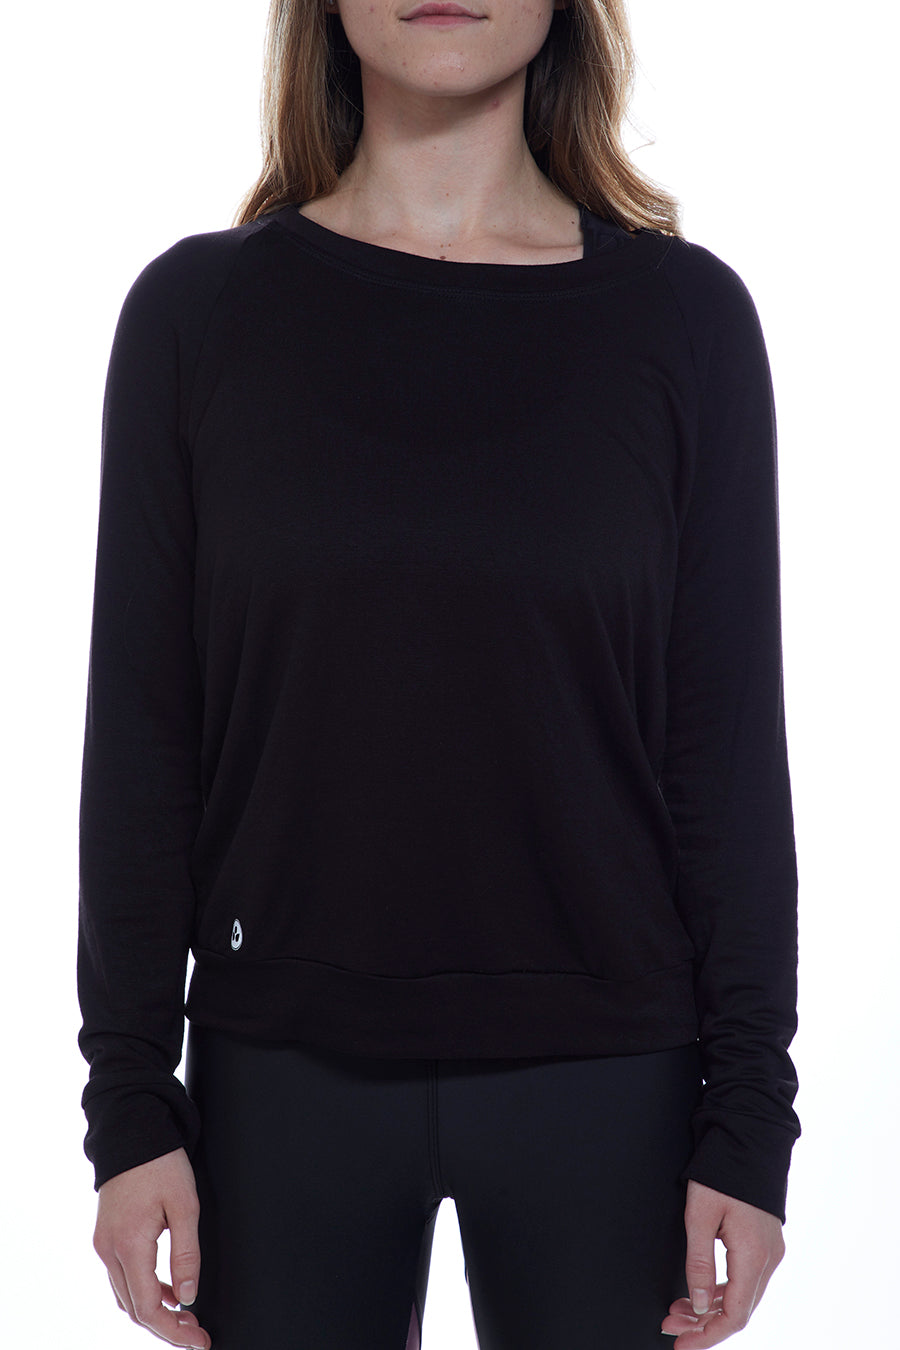 Black Chic Sweatshirt